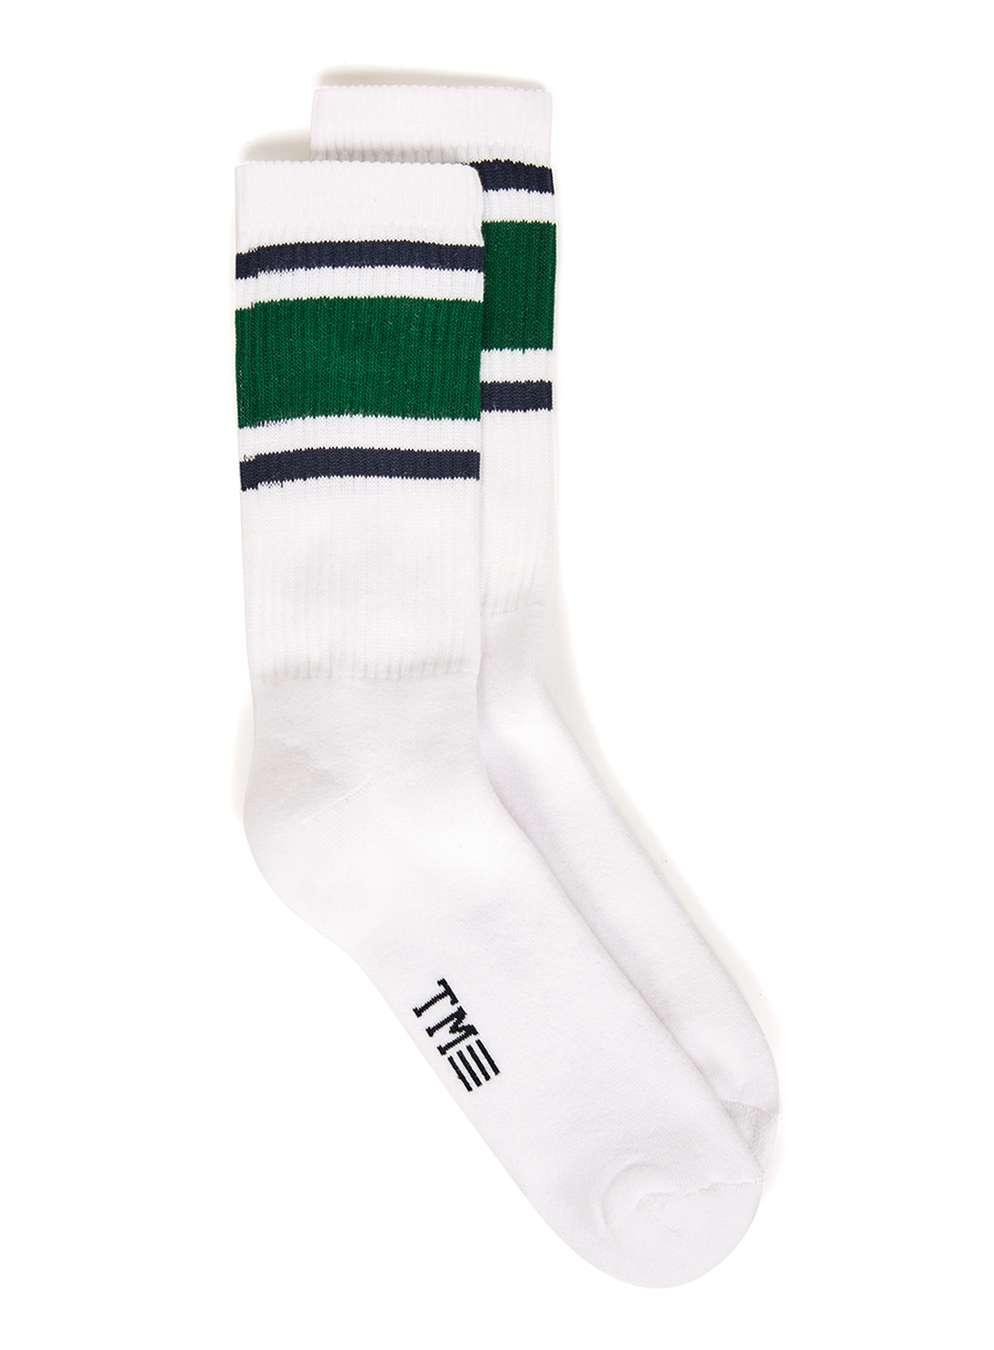 Topman White And Green Stripe Tube Socks